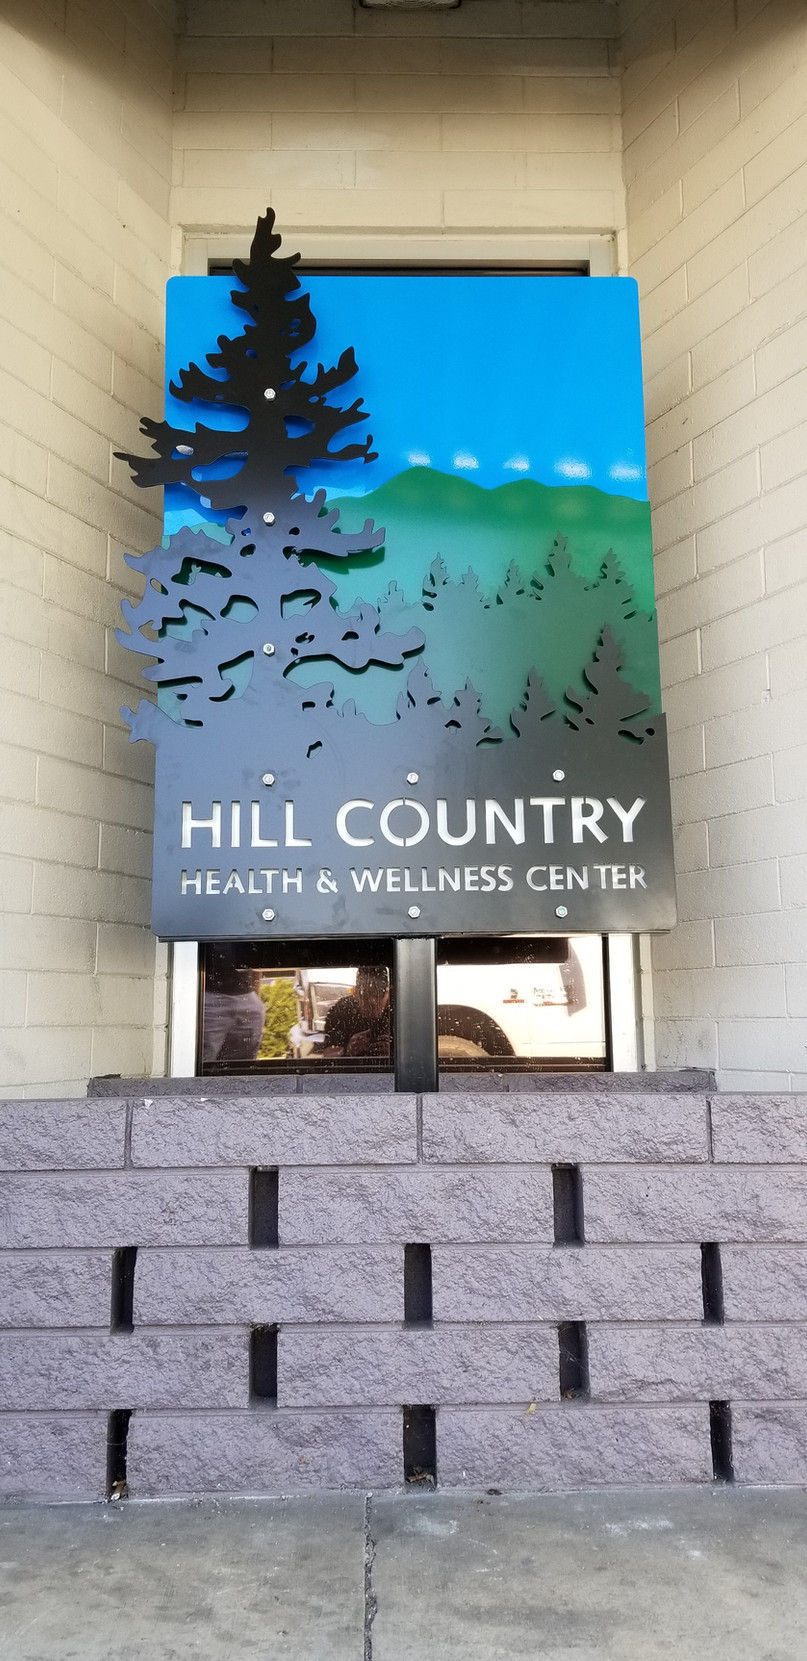 HILL COUNTRY SIGN